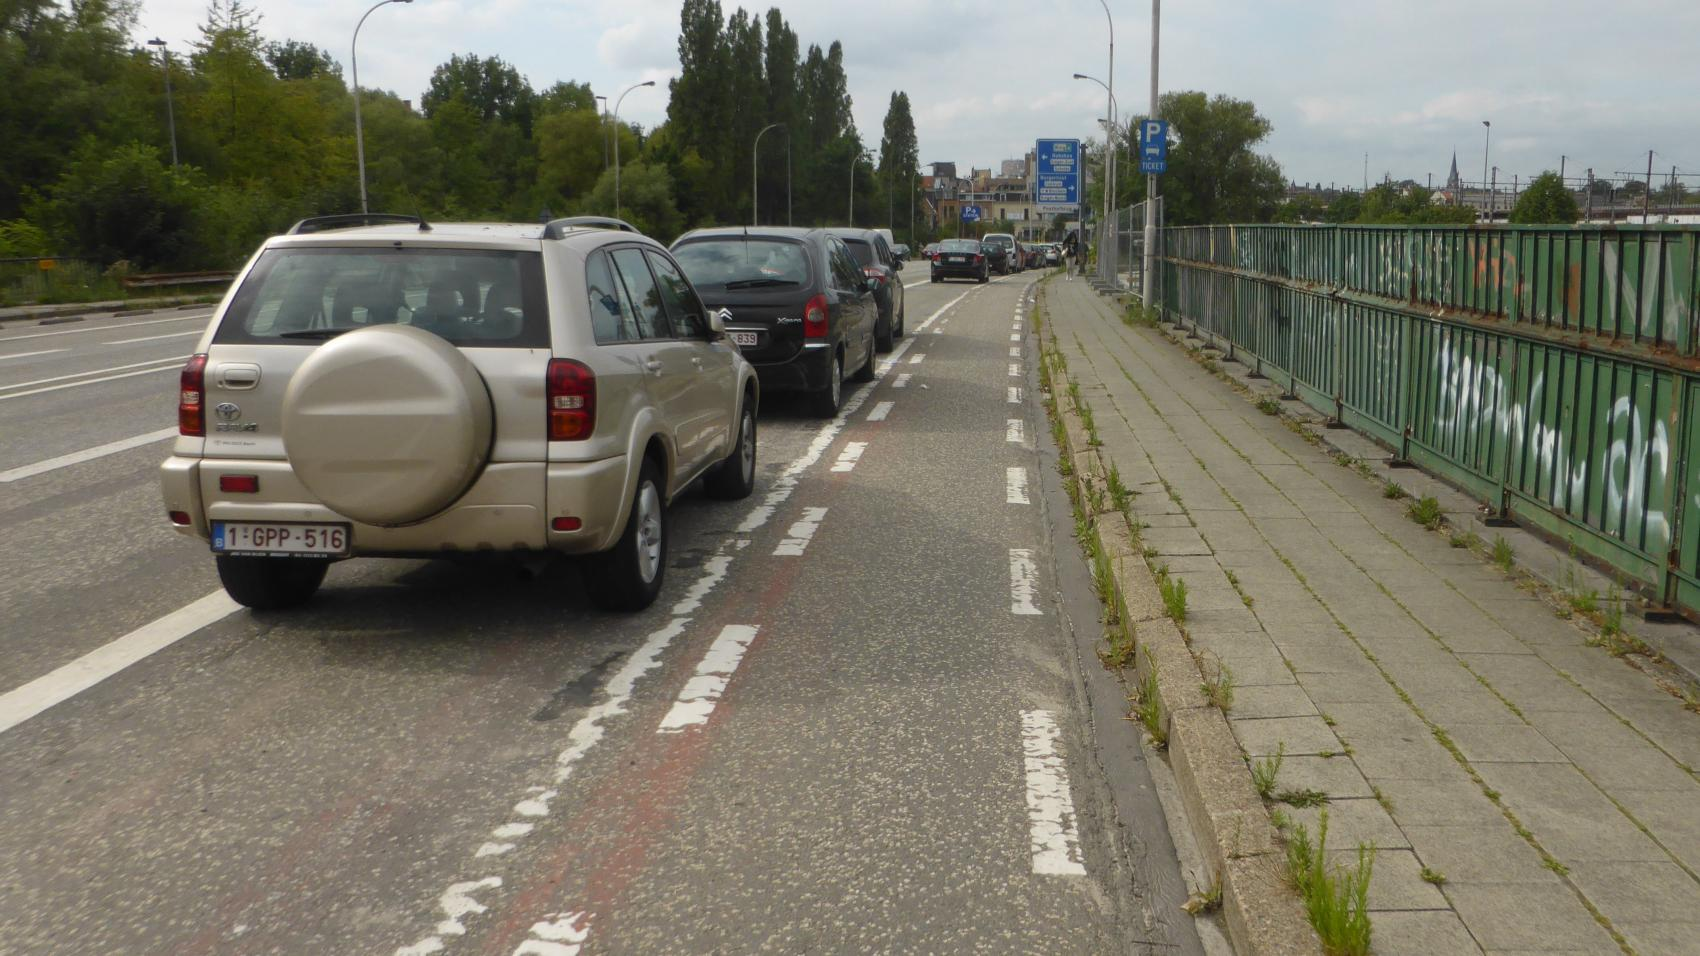 Inbound cycle lane on Posthofbrug before reconstruction.